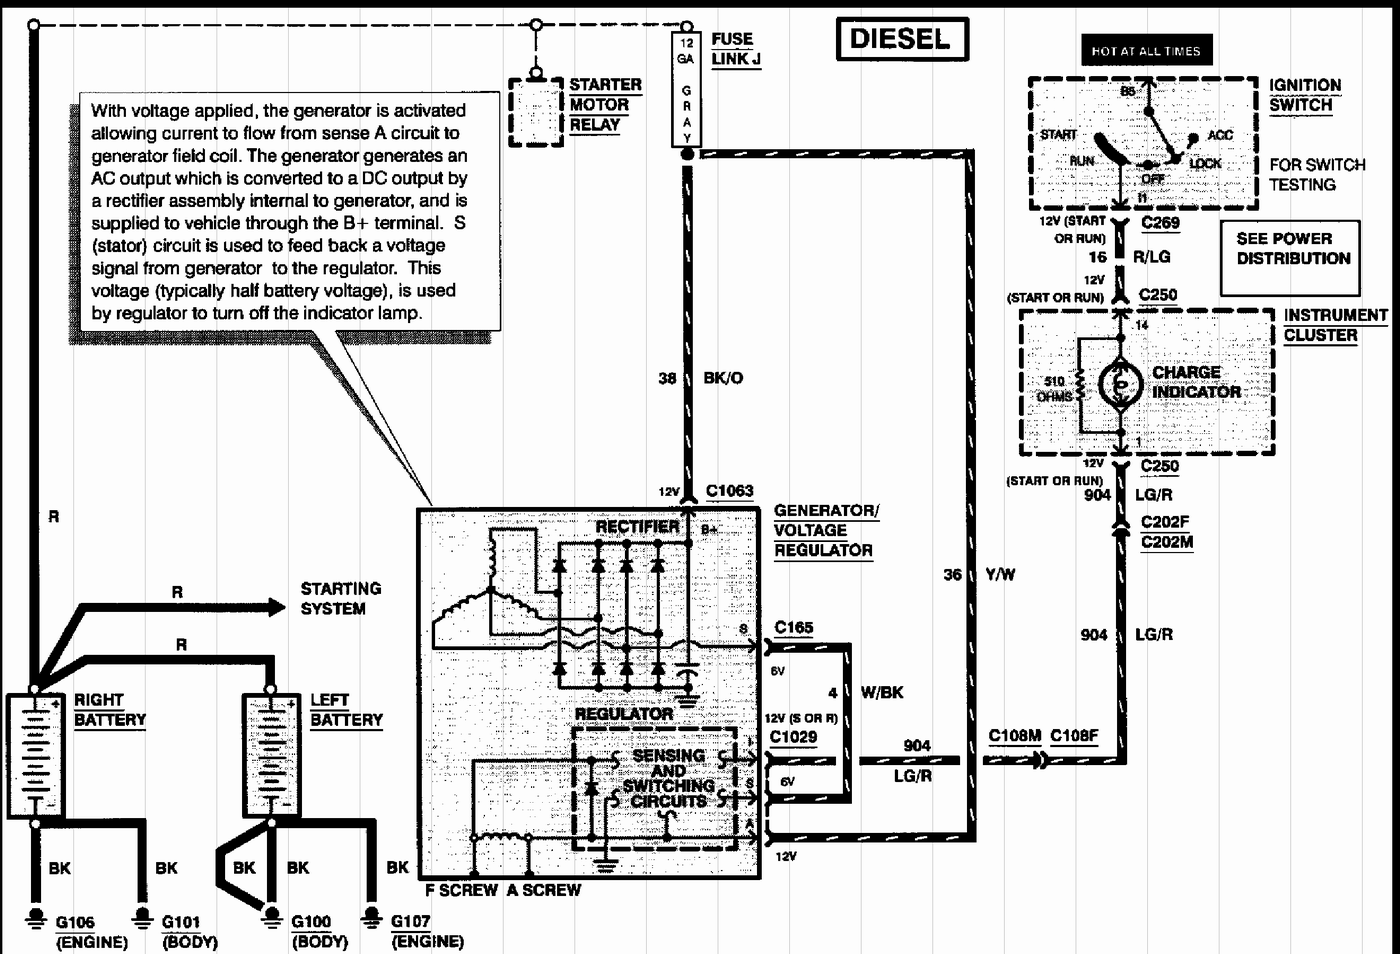 hight resolution of 1995 7 3 powerstroke wiring schematic simple wiring diagram rh 4 mara cujas de 7 3 powerstroke